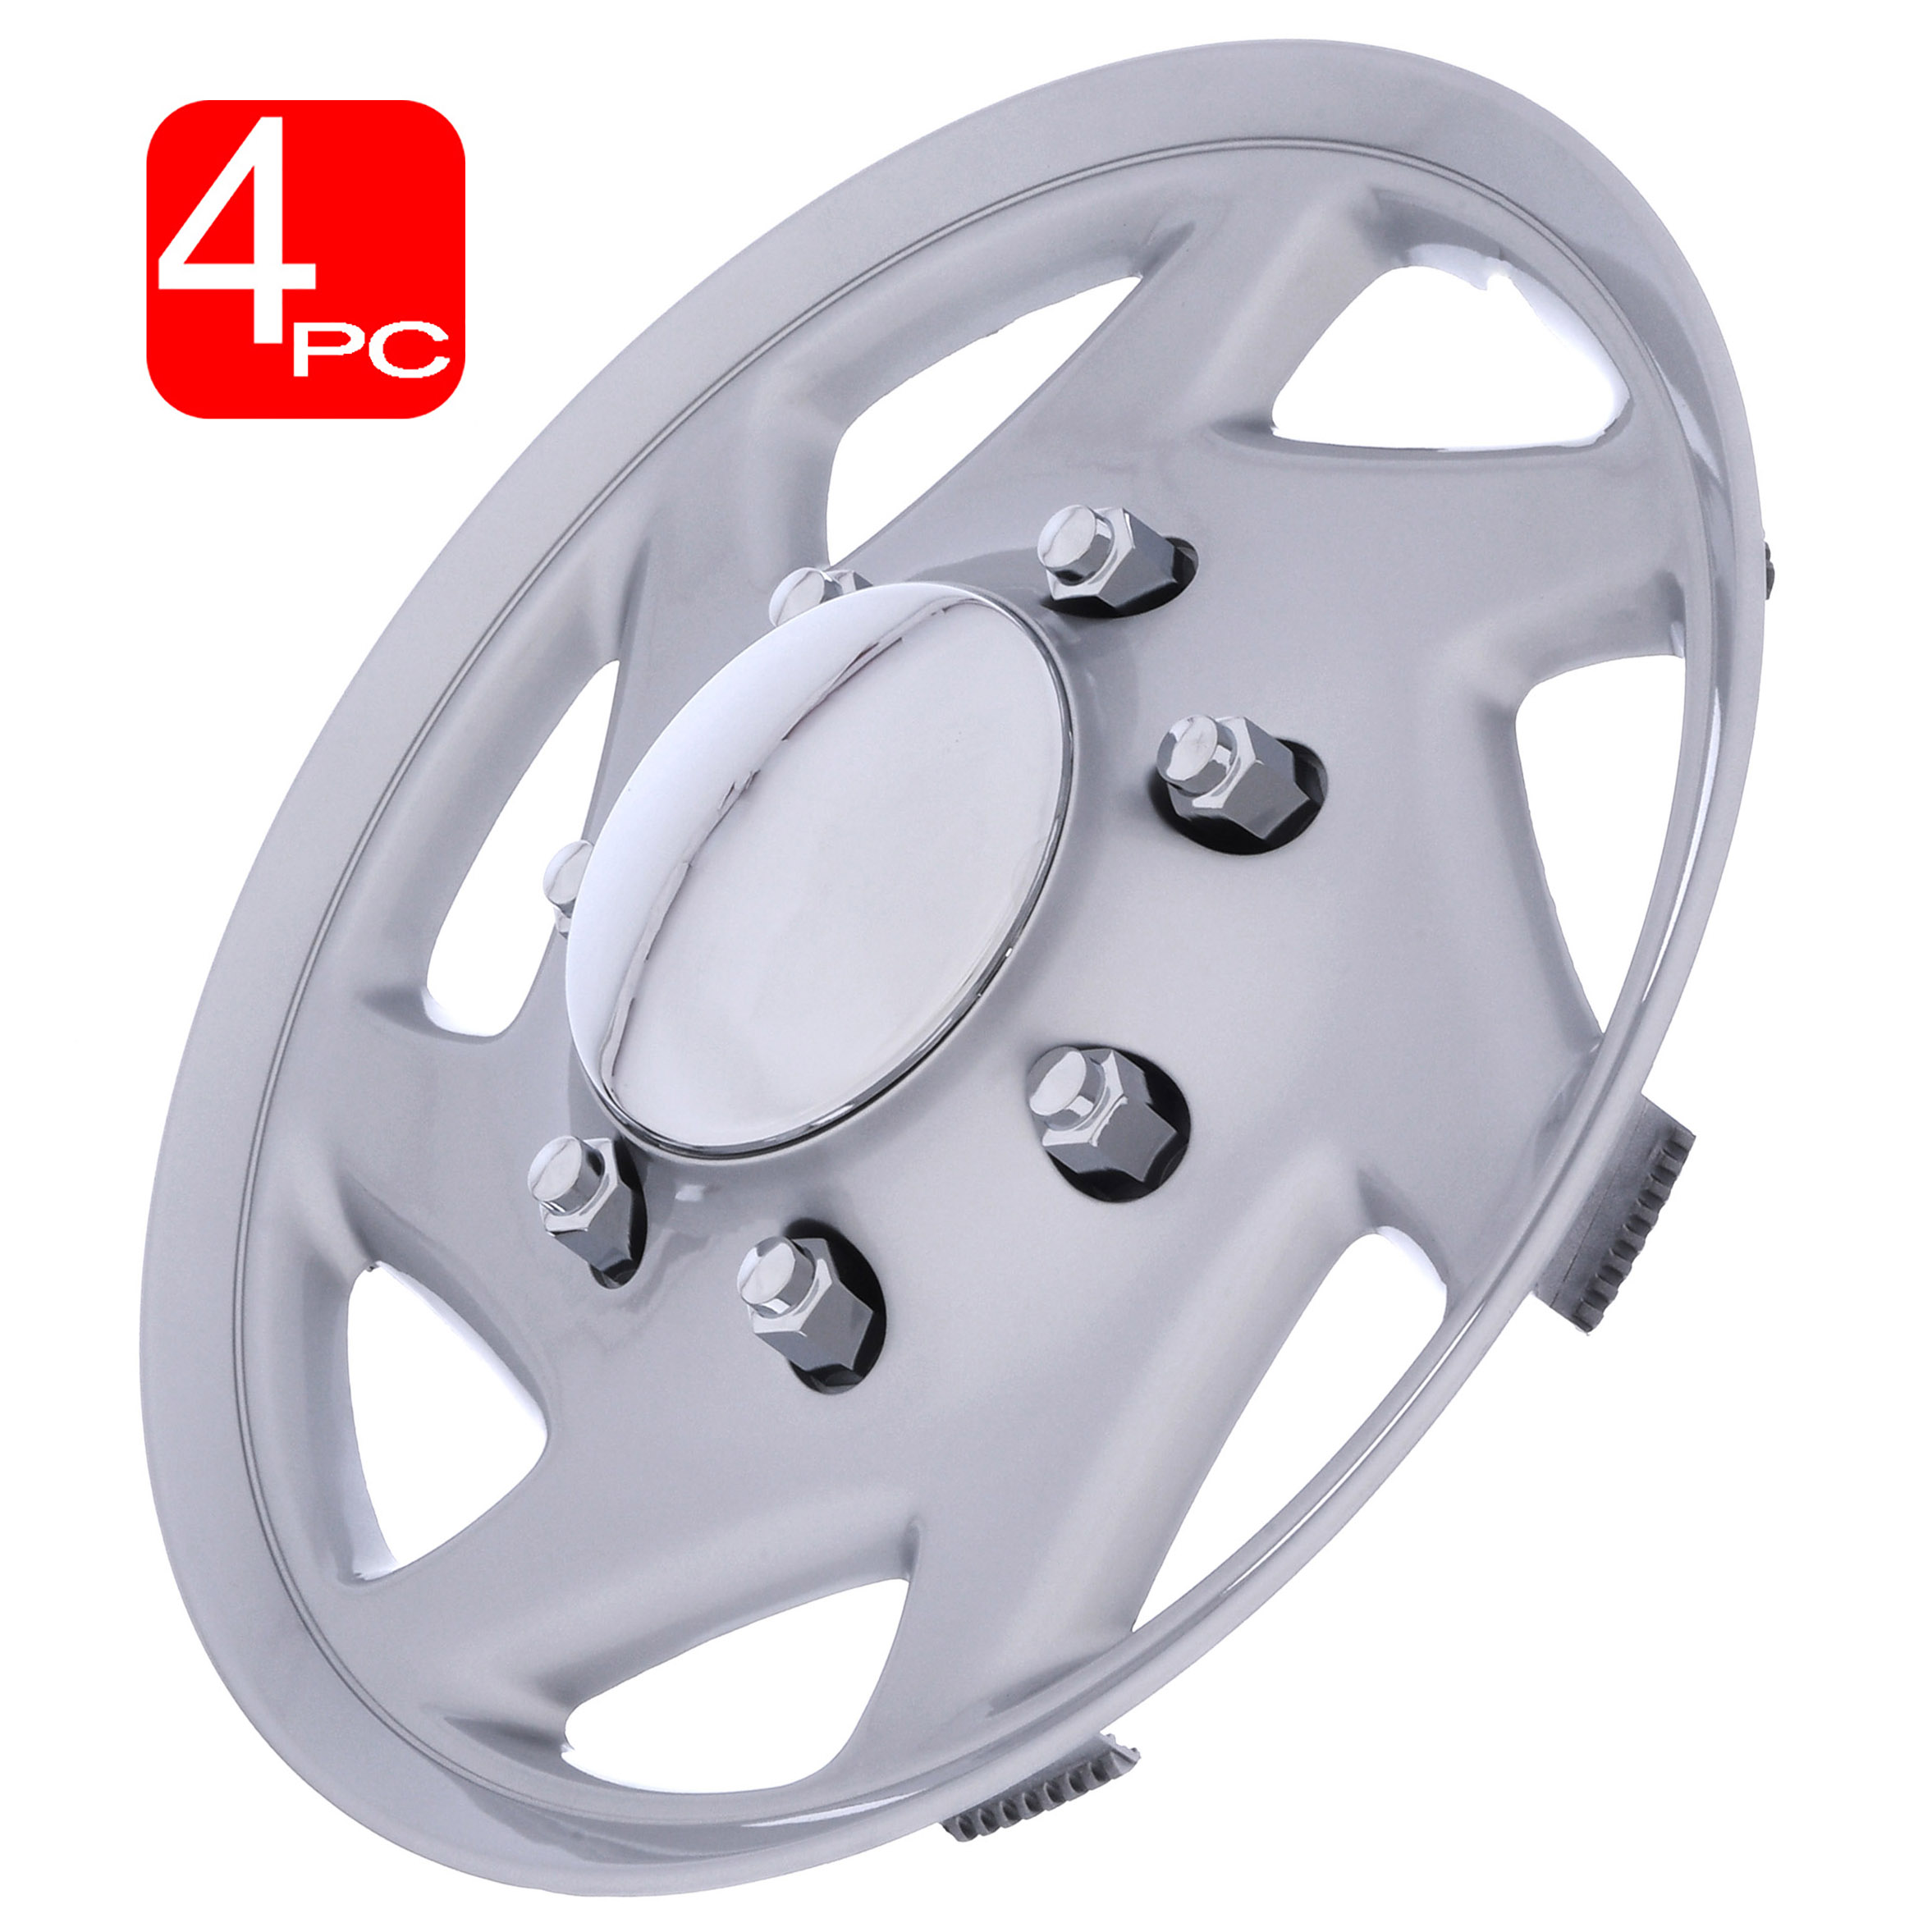 Cover Trend Aftermarket 16 Inch fits FORD TRUCK//ECONOLINE VAN -Replica Hub Caps Set of 4 Silver With Chrome Center and Trim Wheel Covers